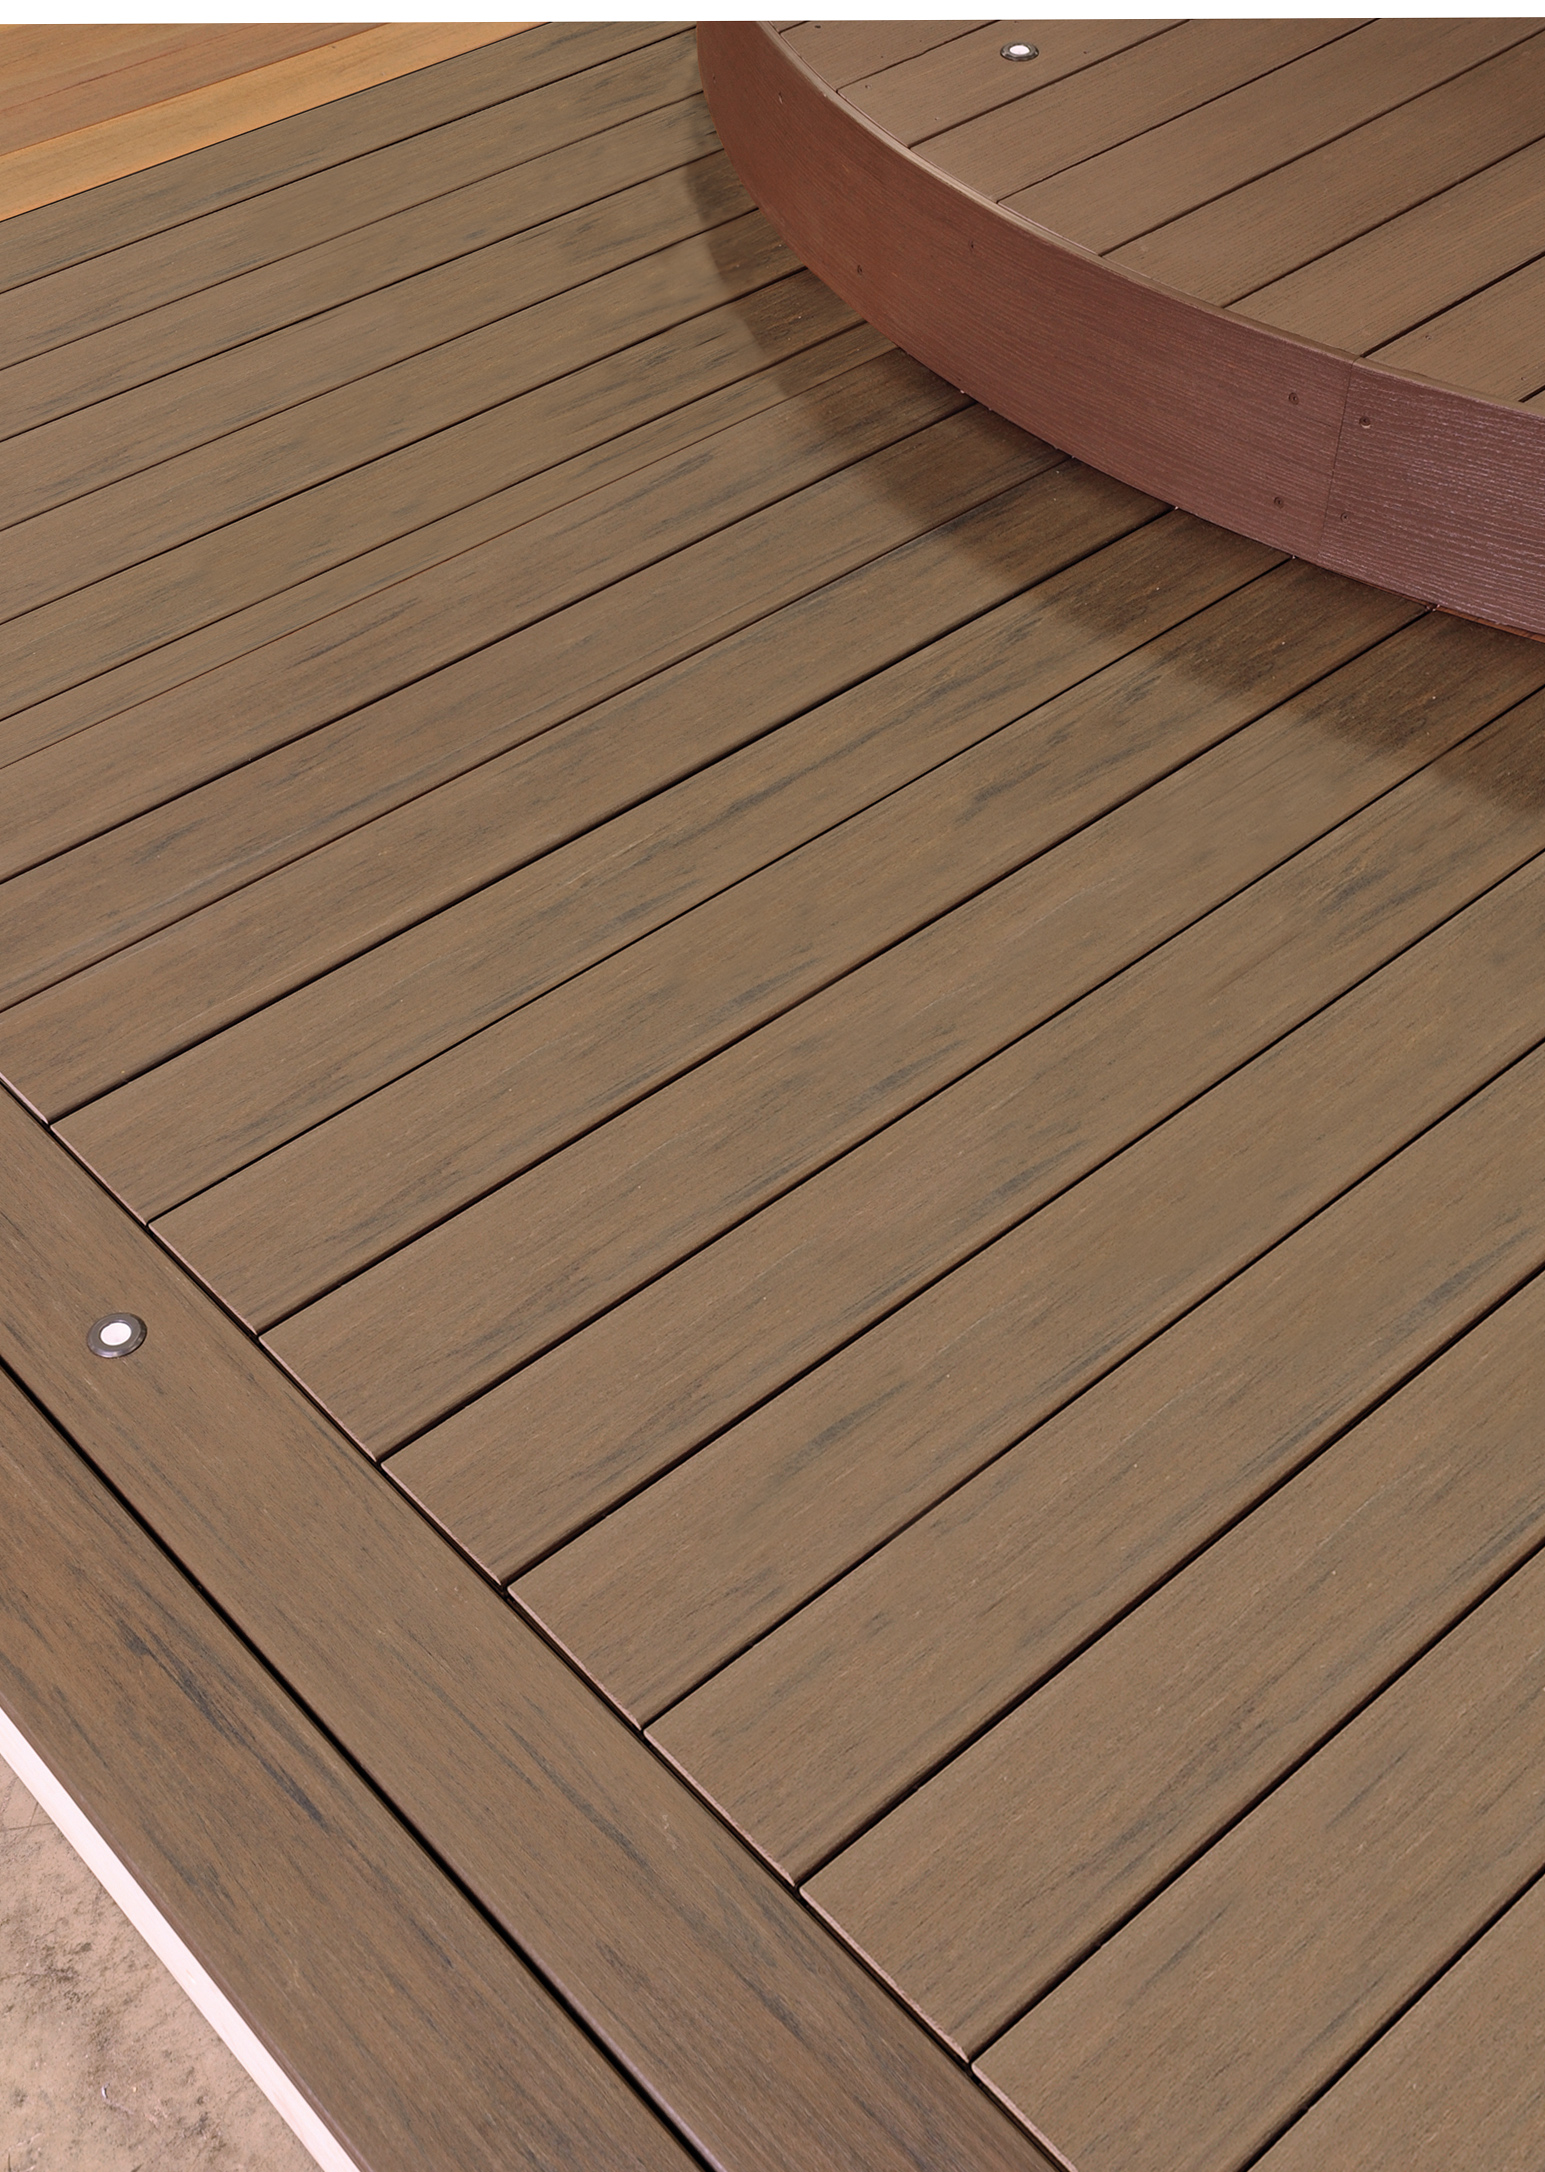 Azek Decking Reviews St. Louis Mo: Archadeck Gives Five-stars To Earthwood